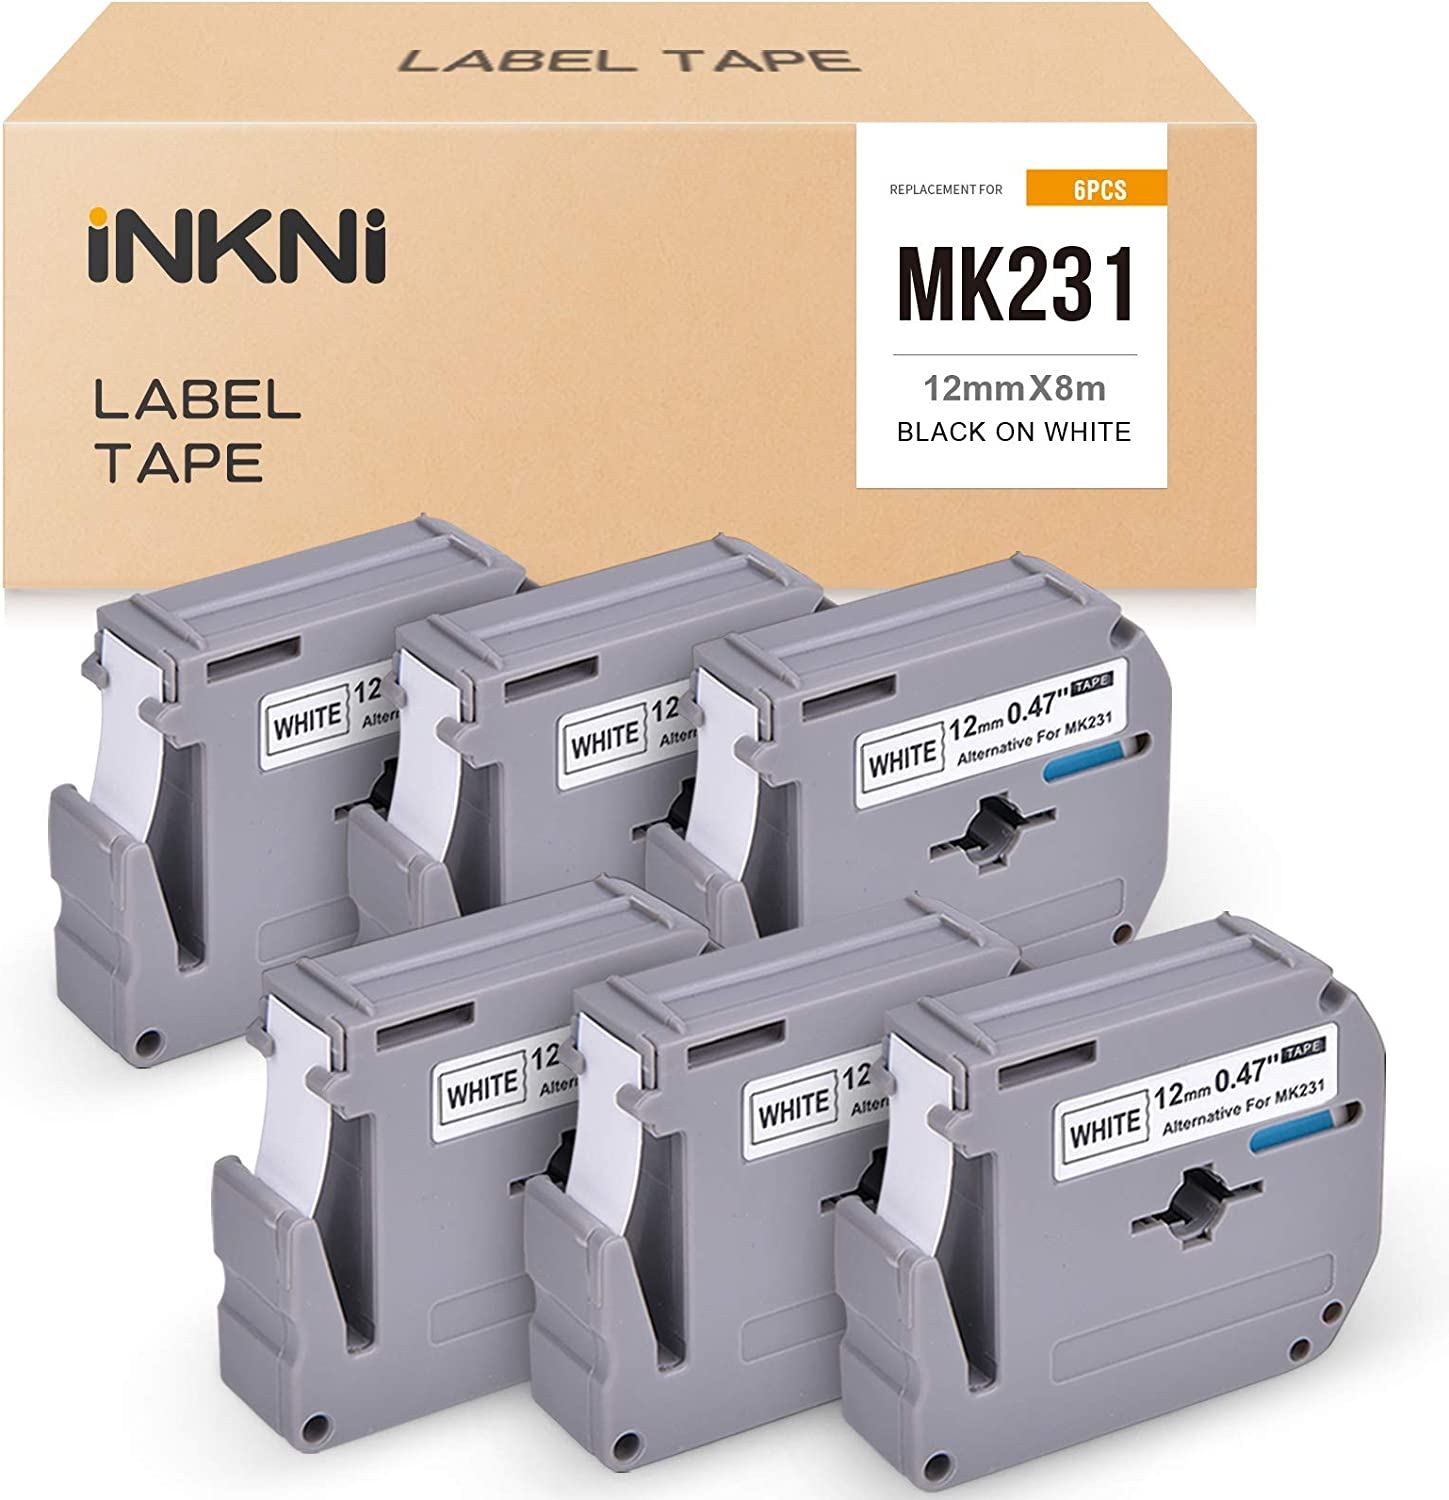 INKNI Compatible Label Tape Replacement for Brother M Tape MK231 M231 M-K231 use with Brother P Touch Label Maker PT-M95 PT-90 PT70 PT-65 PT-85, 0.47 Inch x 26.2 Feet, Black on White, 6-Pack